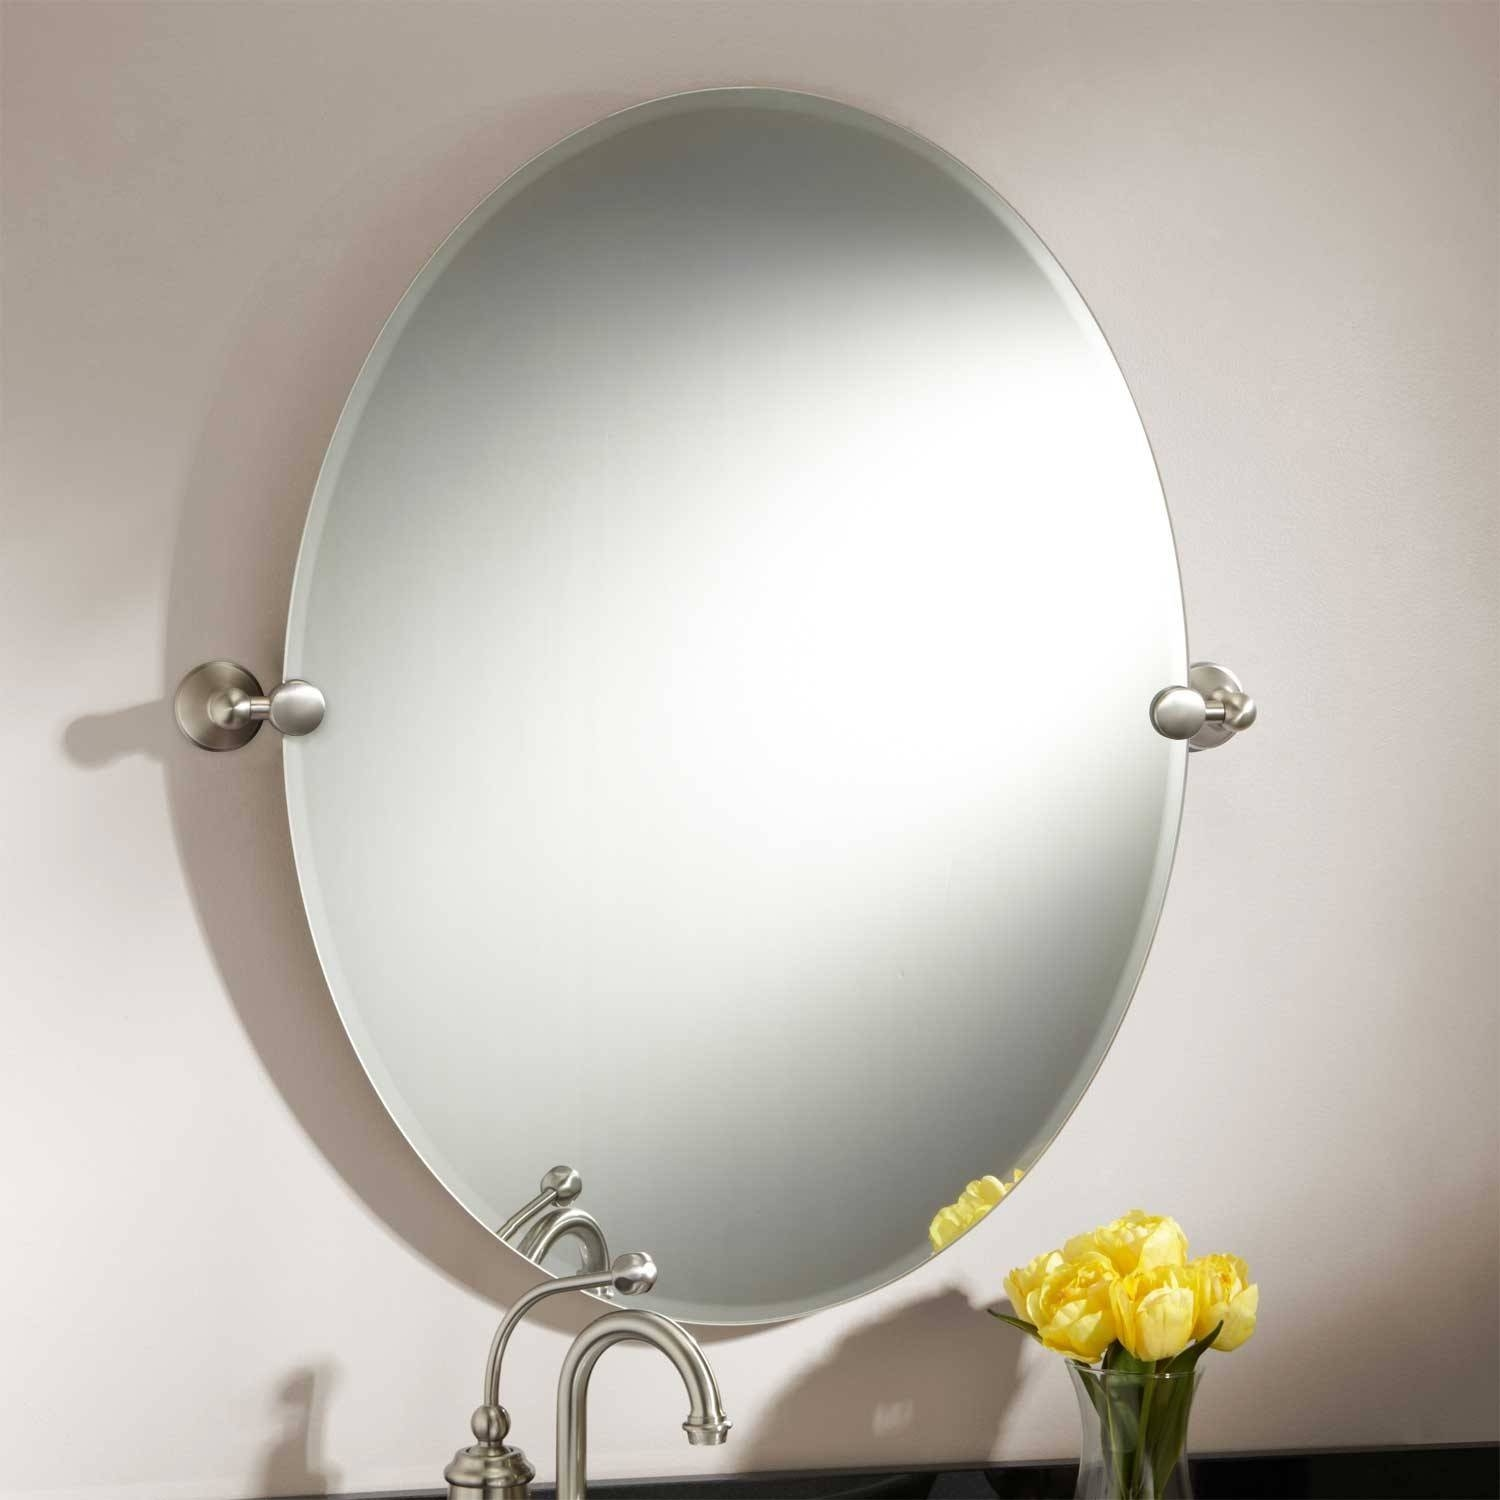 Bathroom : Rustic Bathroom Mirror With Unusual Frame Design with regard to Unusual Shaped Mirrors (Image 3 of 25)